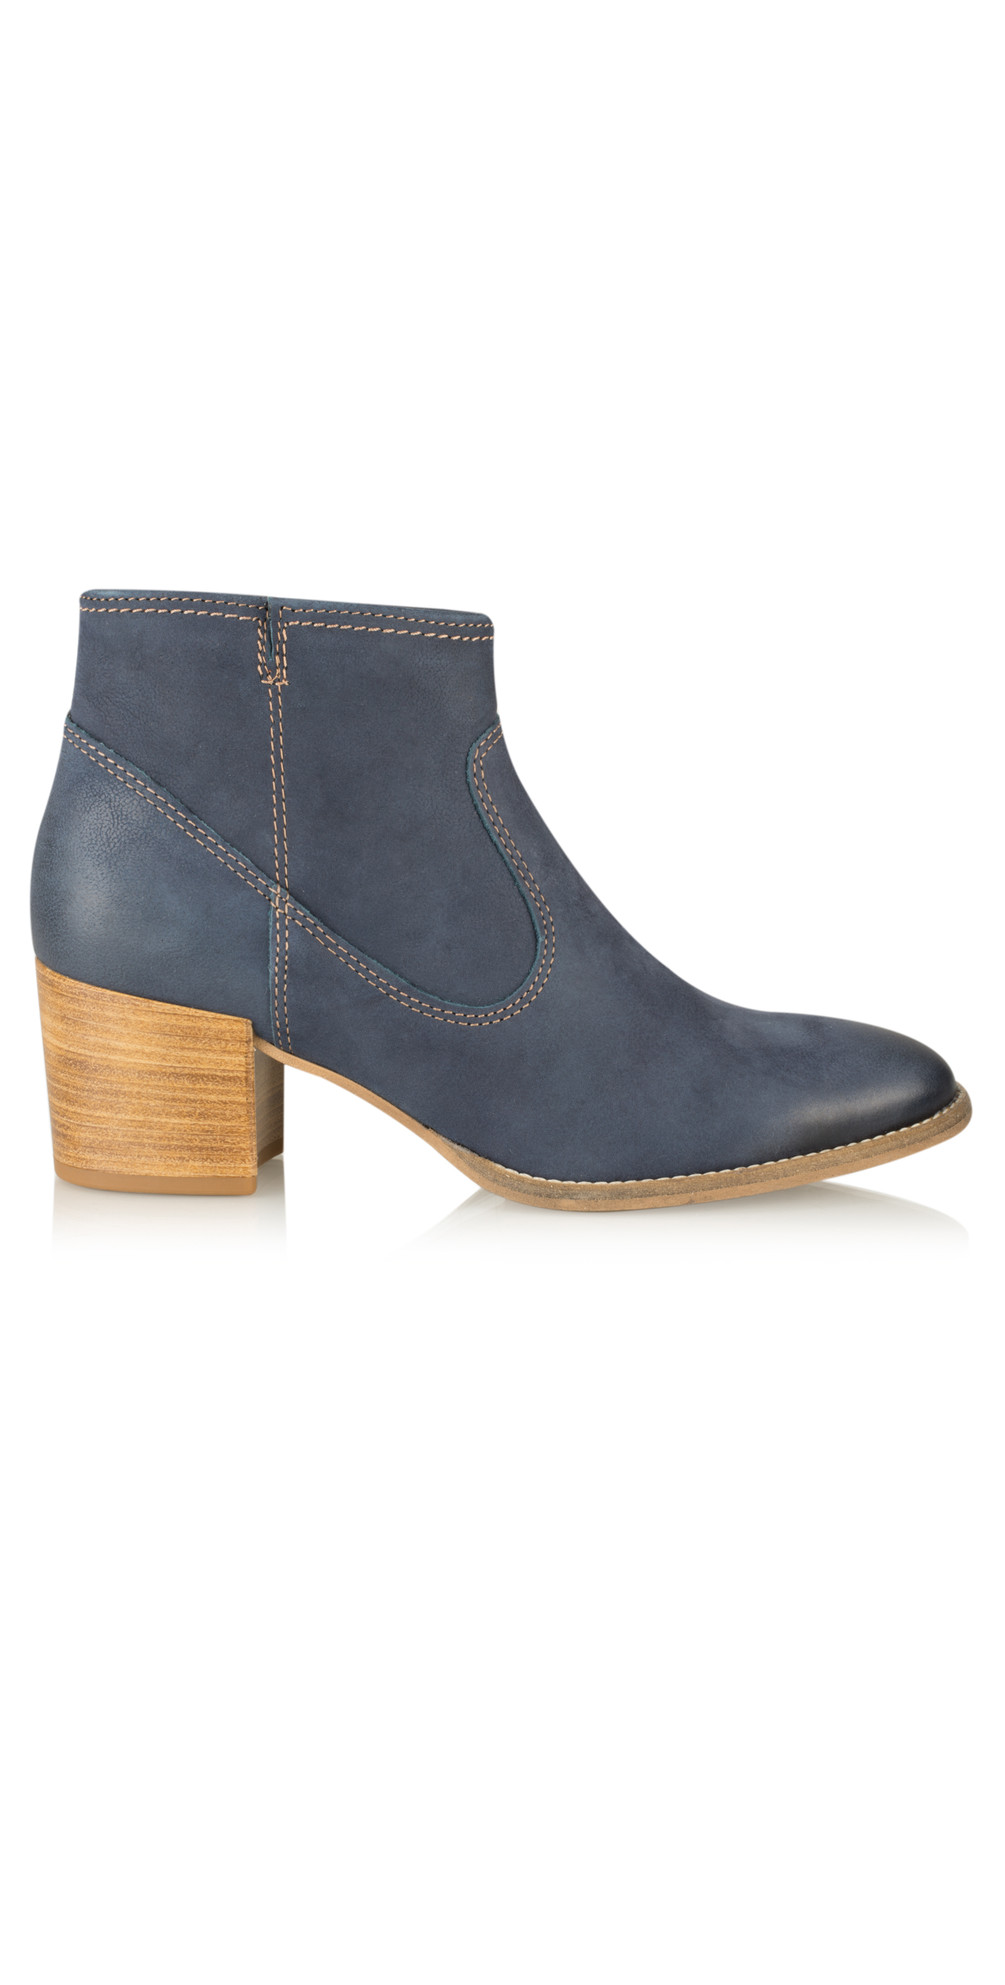 Nubuck Suede Ankle Boot main image